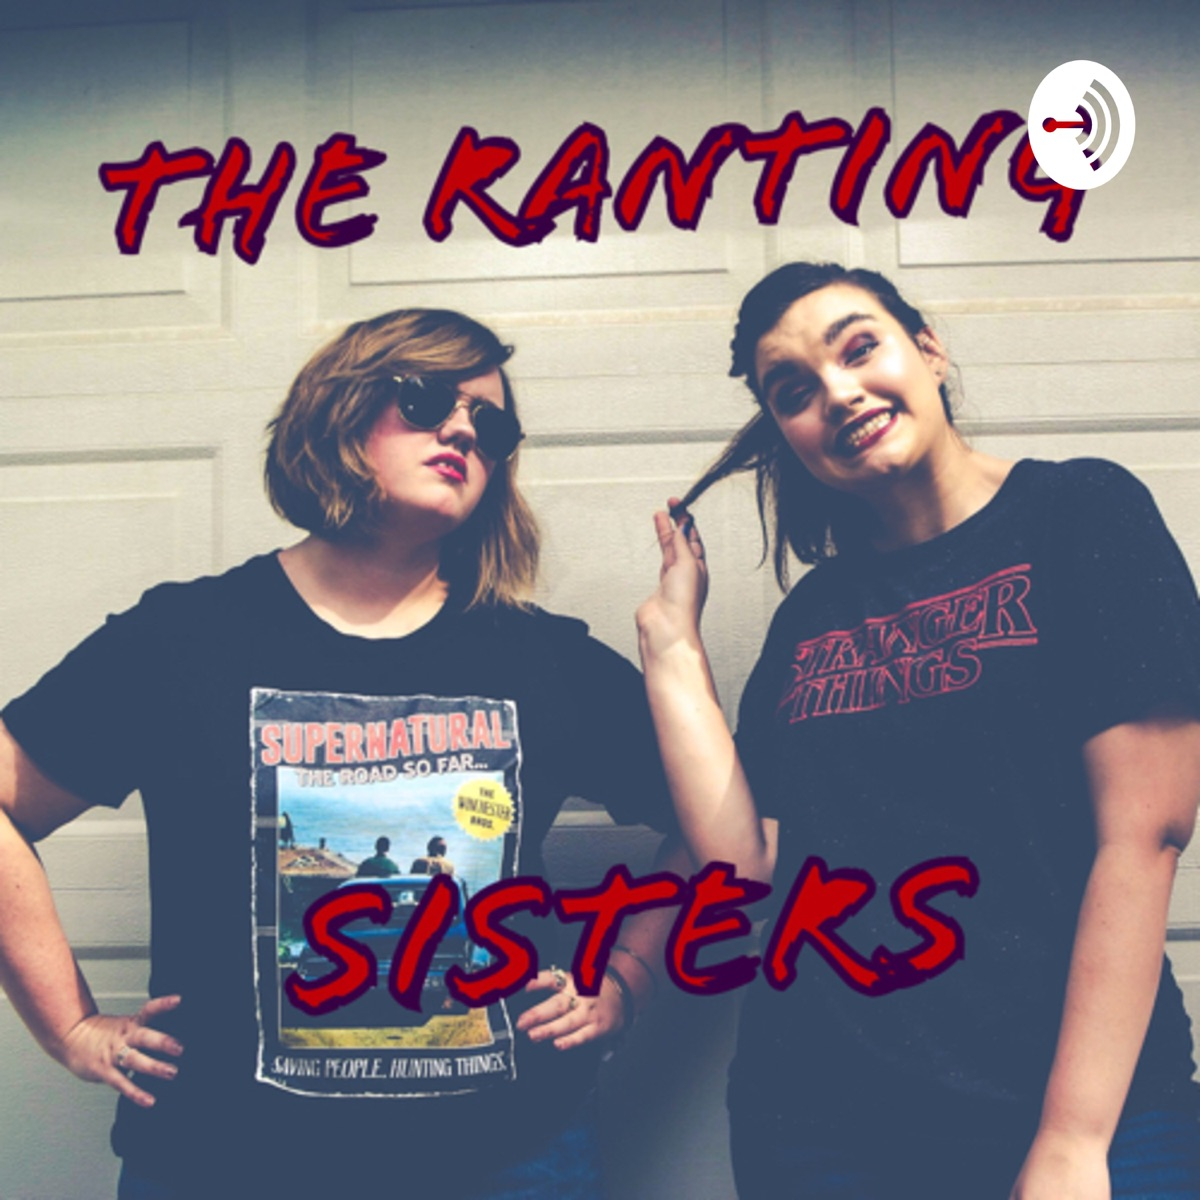 The ranting sisters